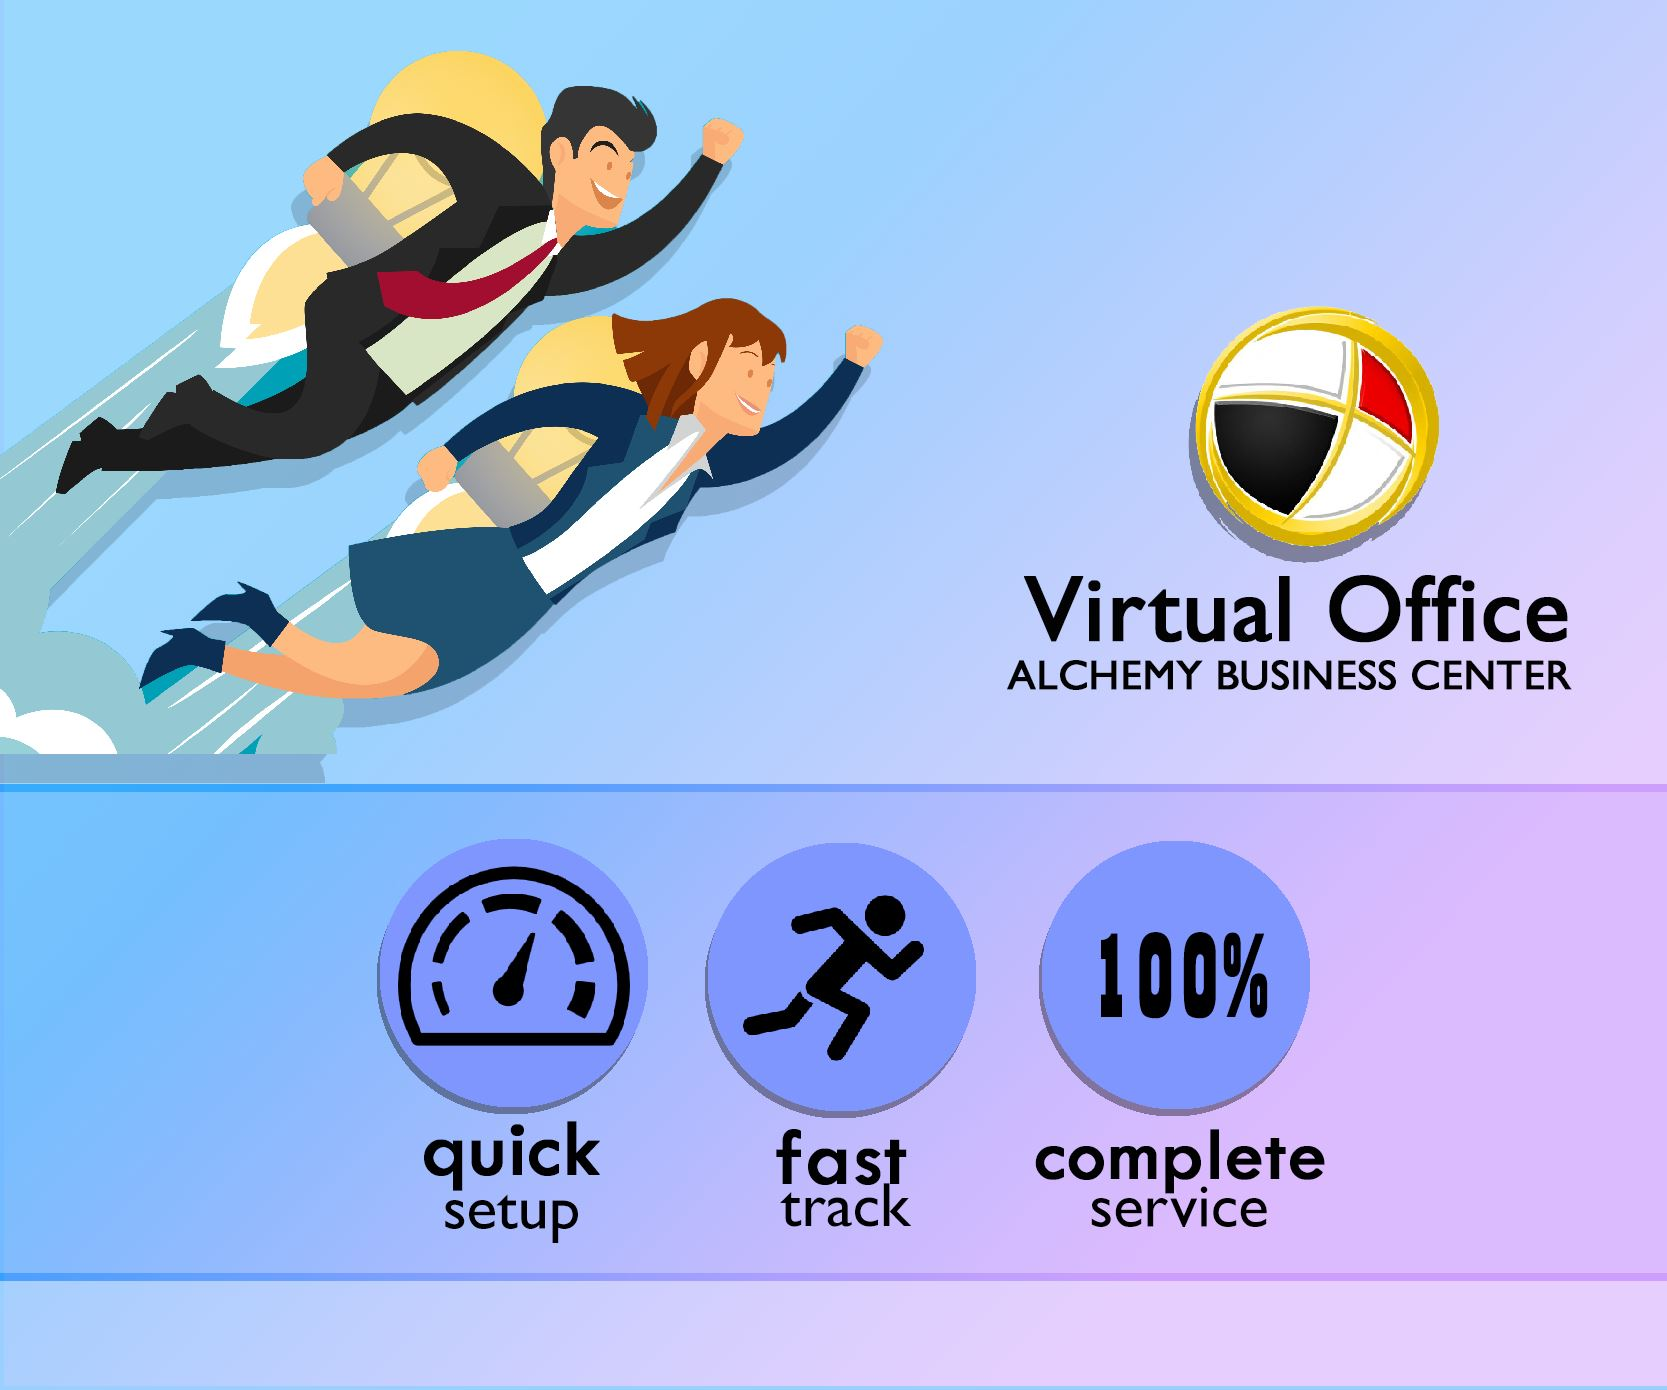 VIRTUAL OFFICE PHILIPPINES Alchemy Business Center